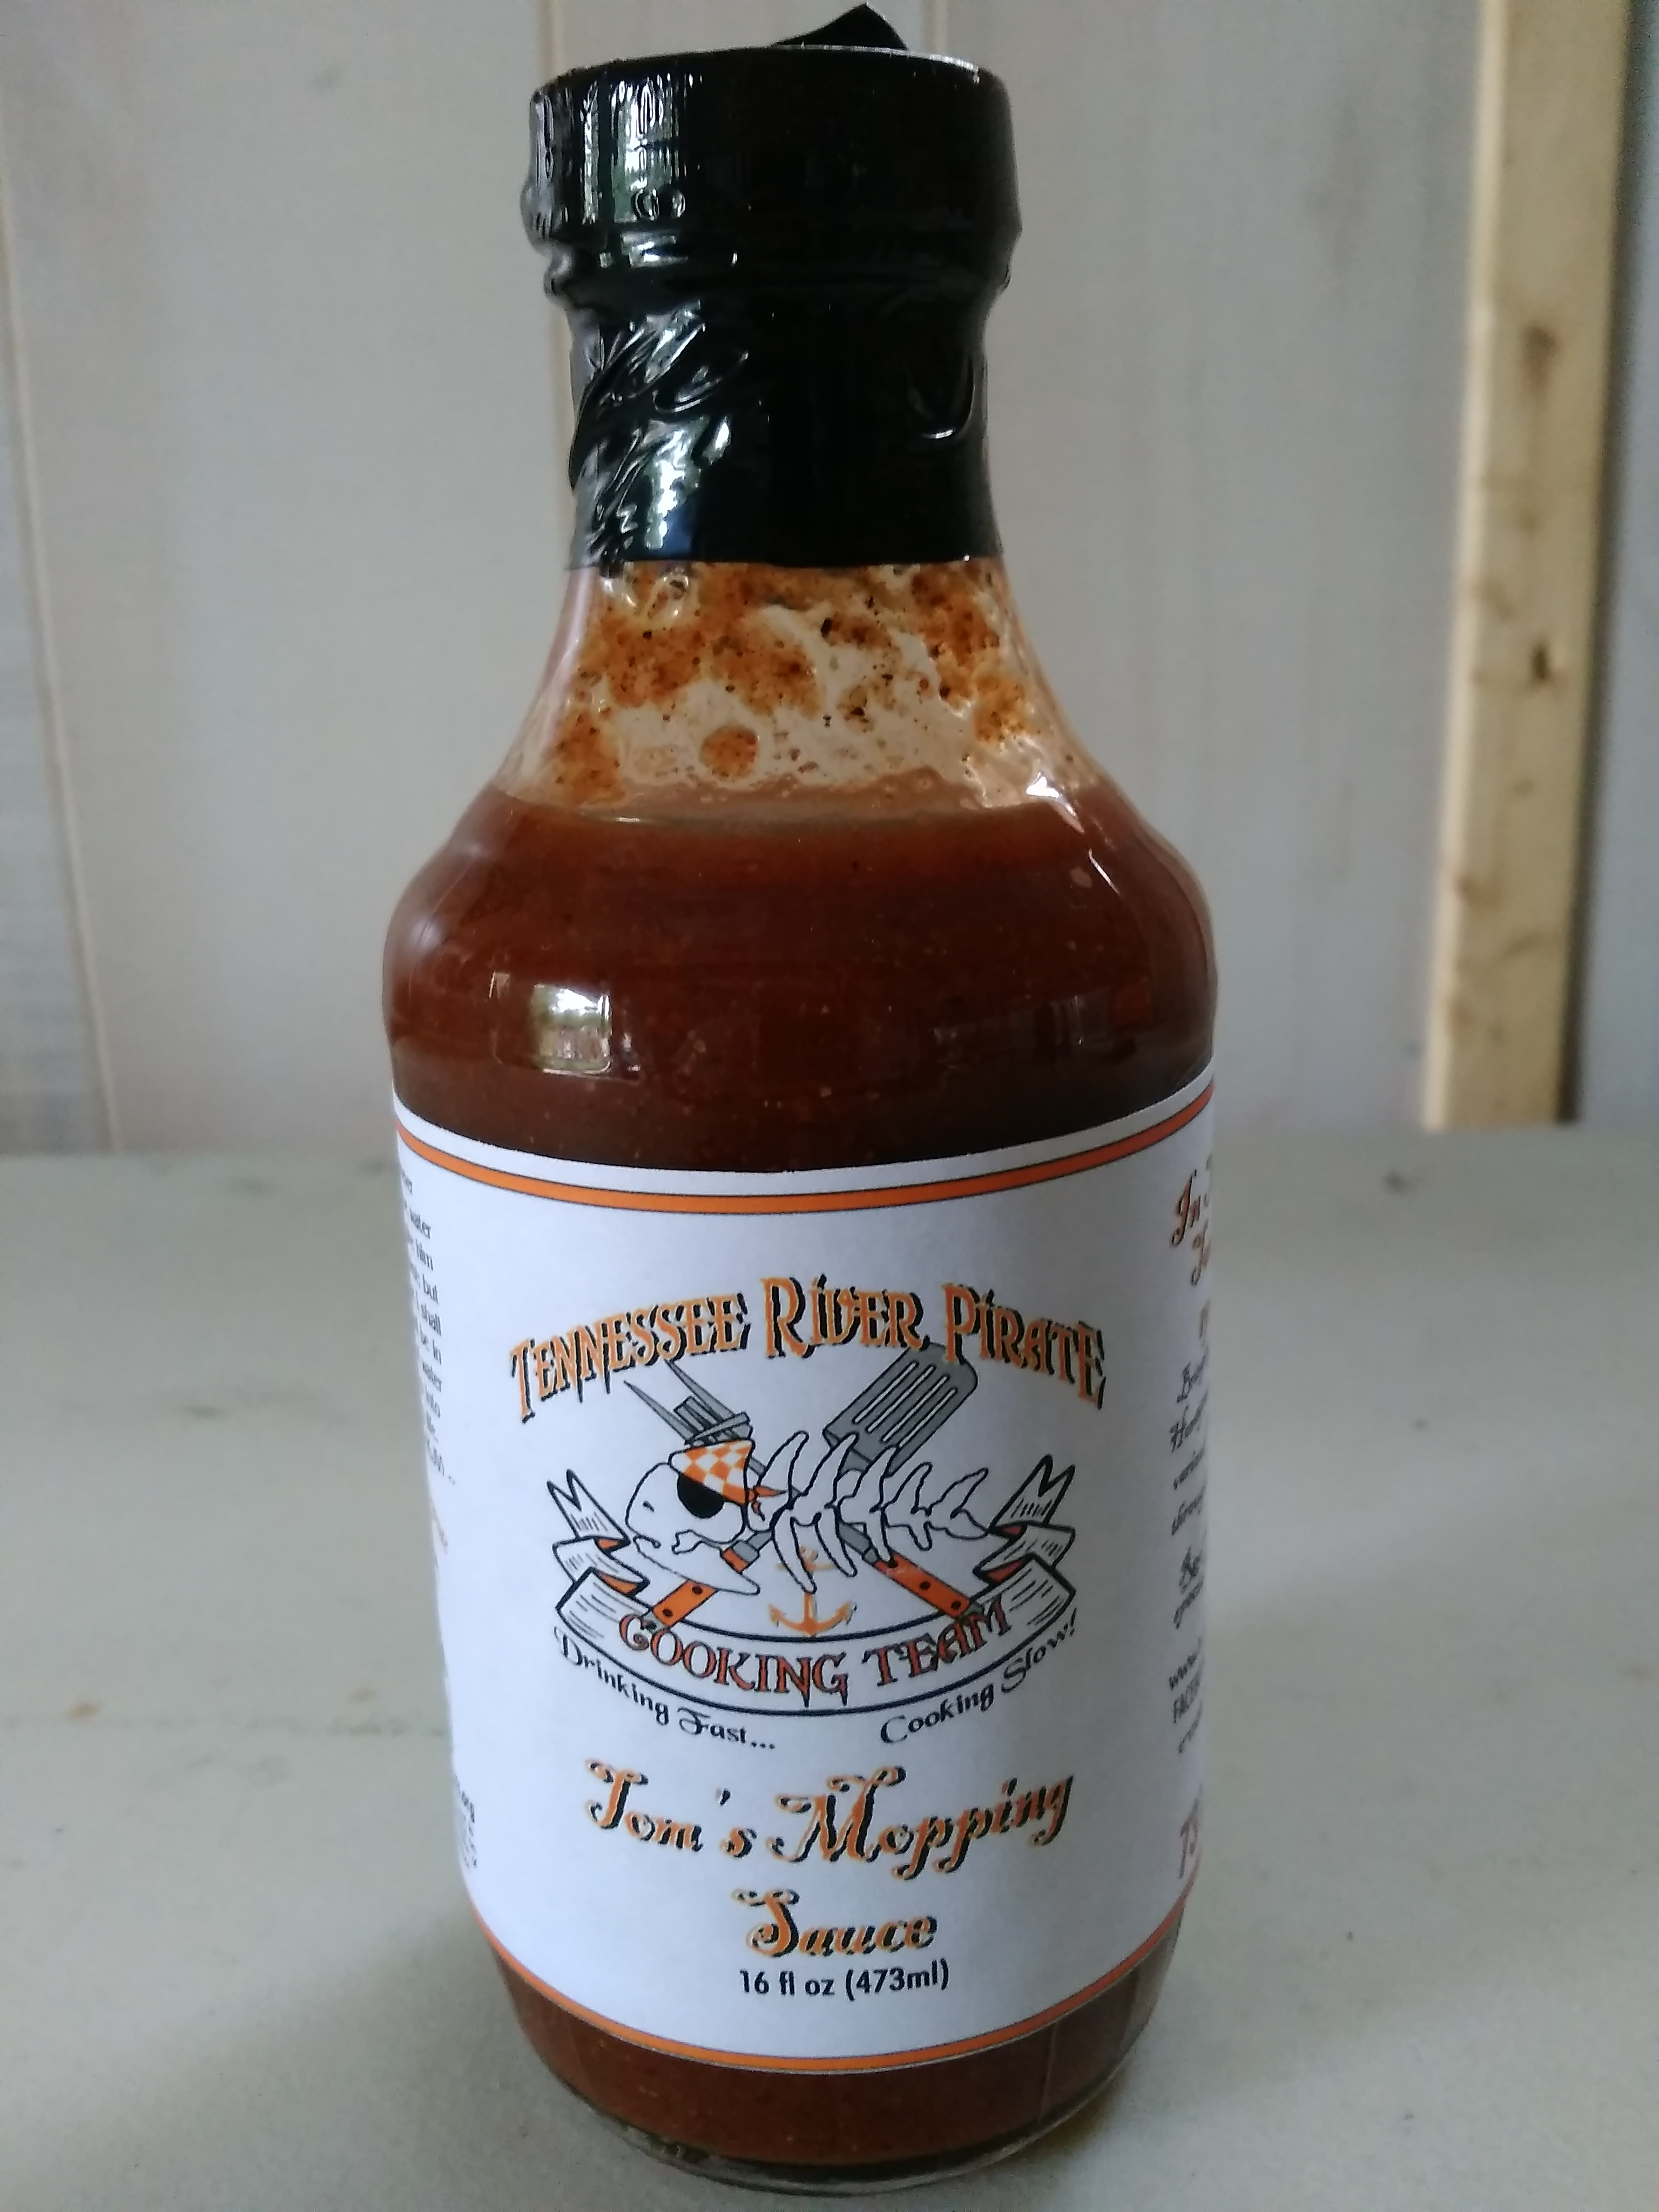 Tennessee River Pirate Mopping Sauce